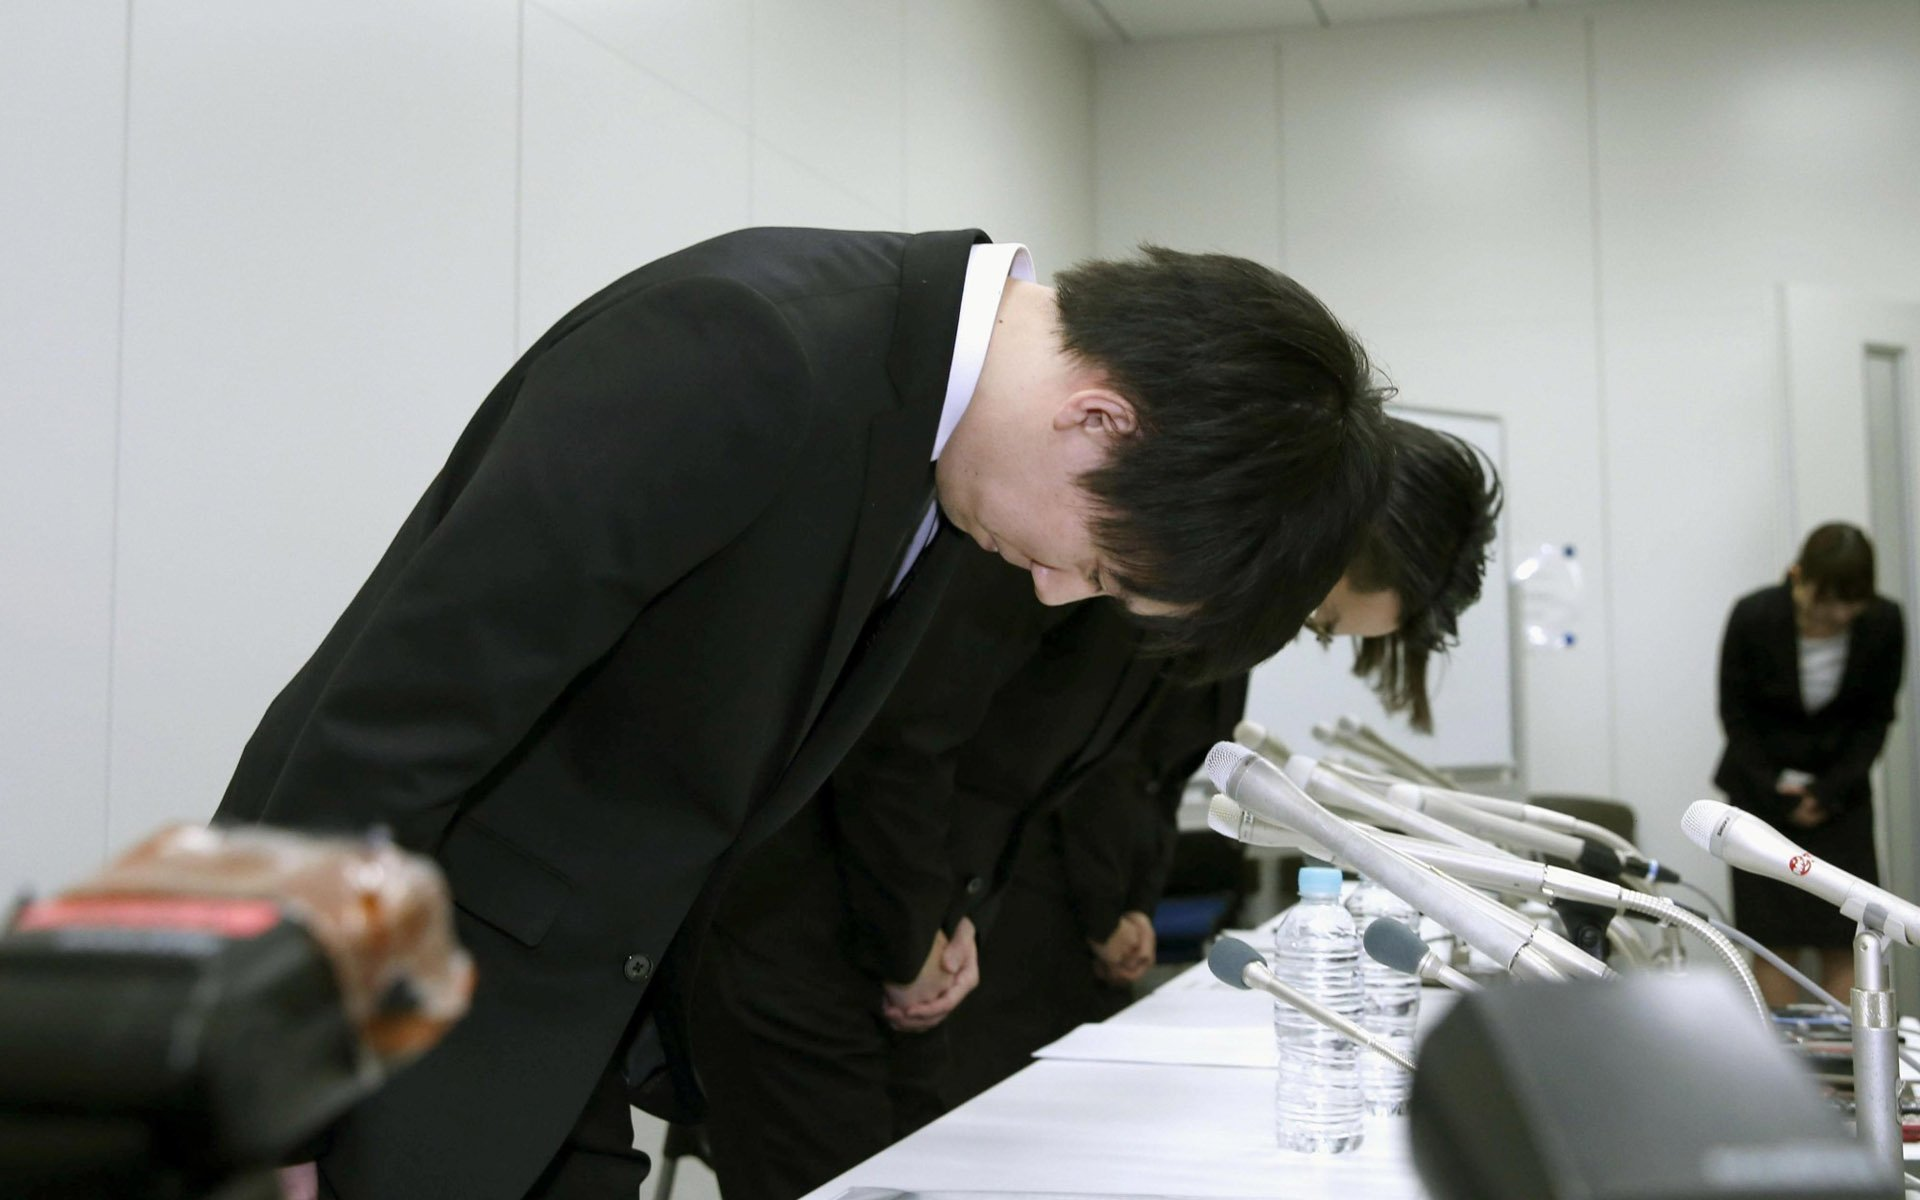 Coincheck executives apologizing for the hadk.